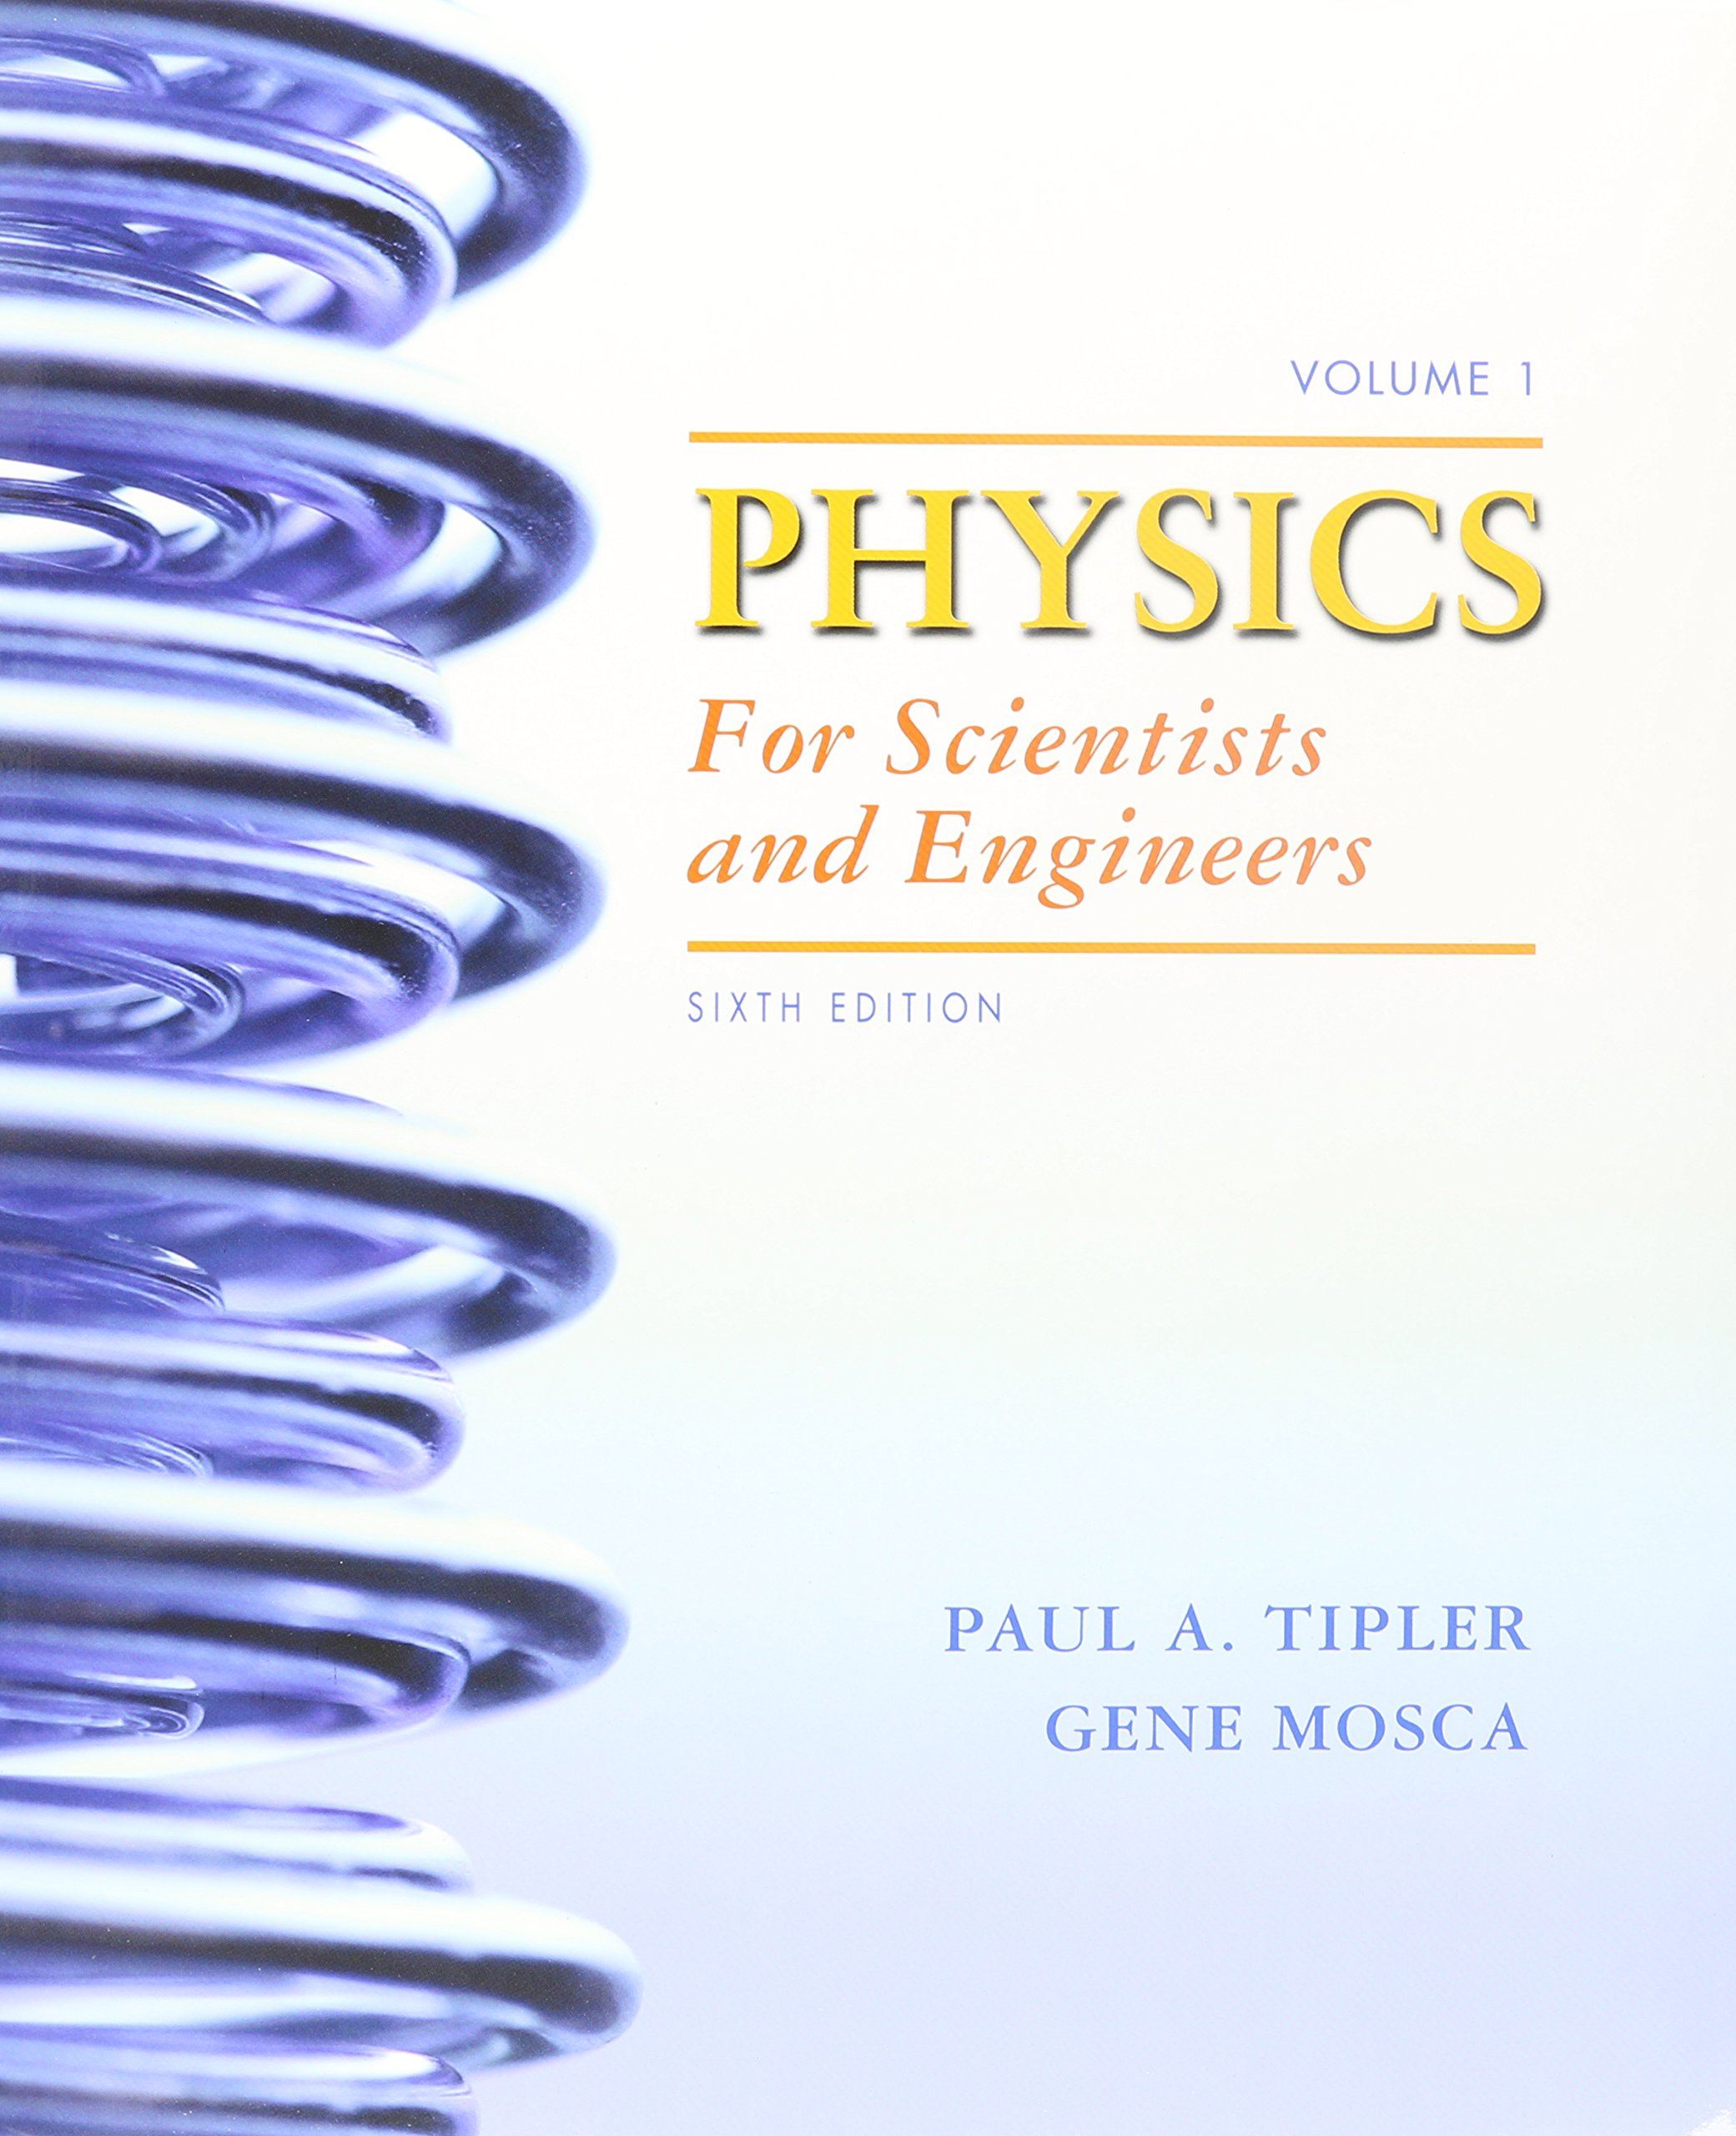 Physics for Scientists and Engineers [With 2 Paperbacks]: Paul Allen Tipler,  Gene Mosca: 9781429203623: Books - Amazon.ca